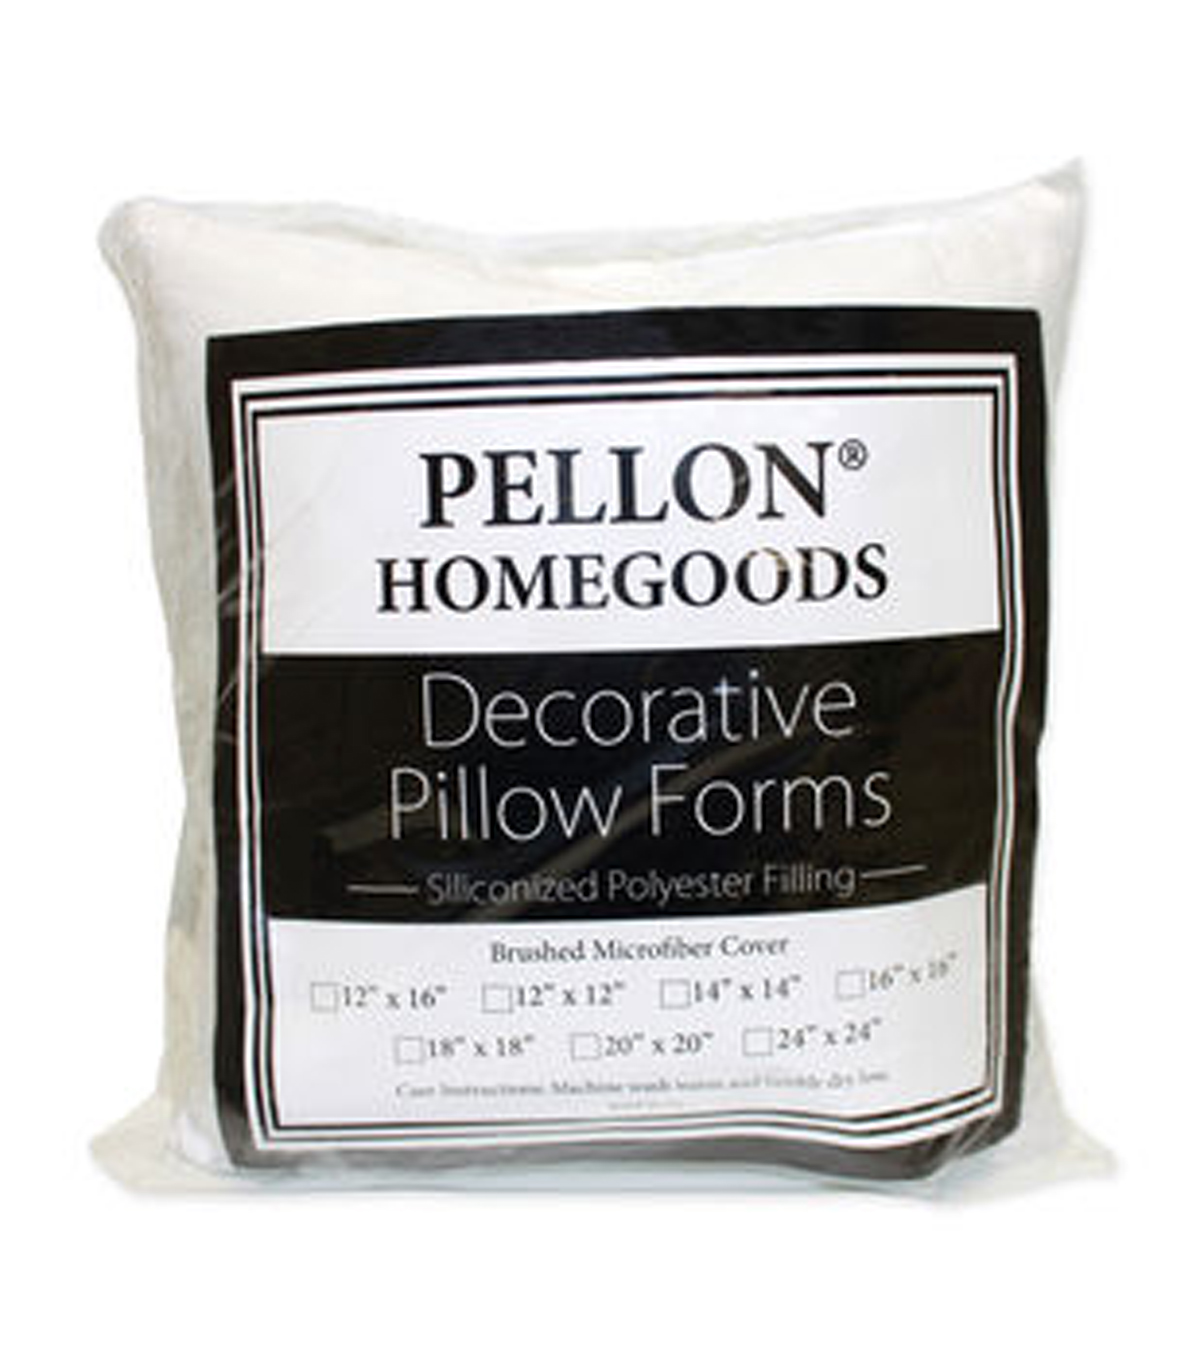 Pellon Decorative 24\u0022 x 24\u0022 Microfiber Pillow Form